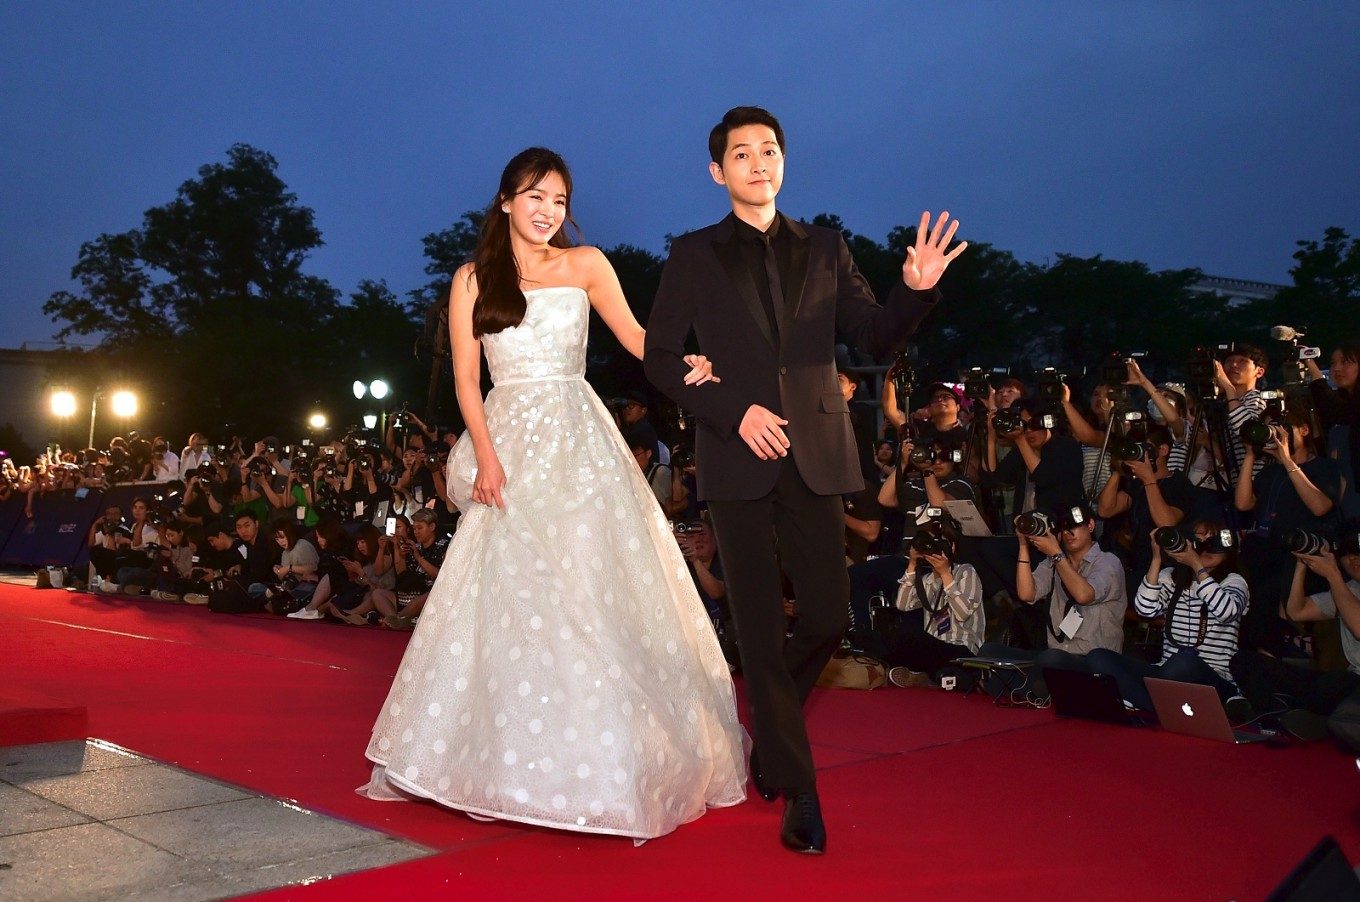 Song About Wedding.Song Song Couple S Divorce Sheds Light On Wedding Ring Incident